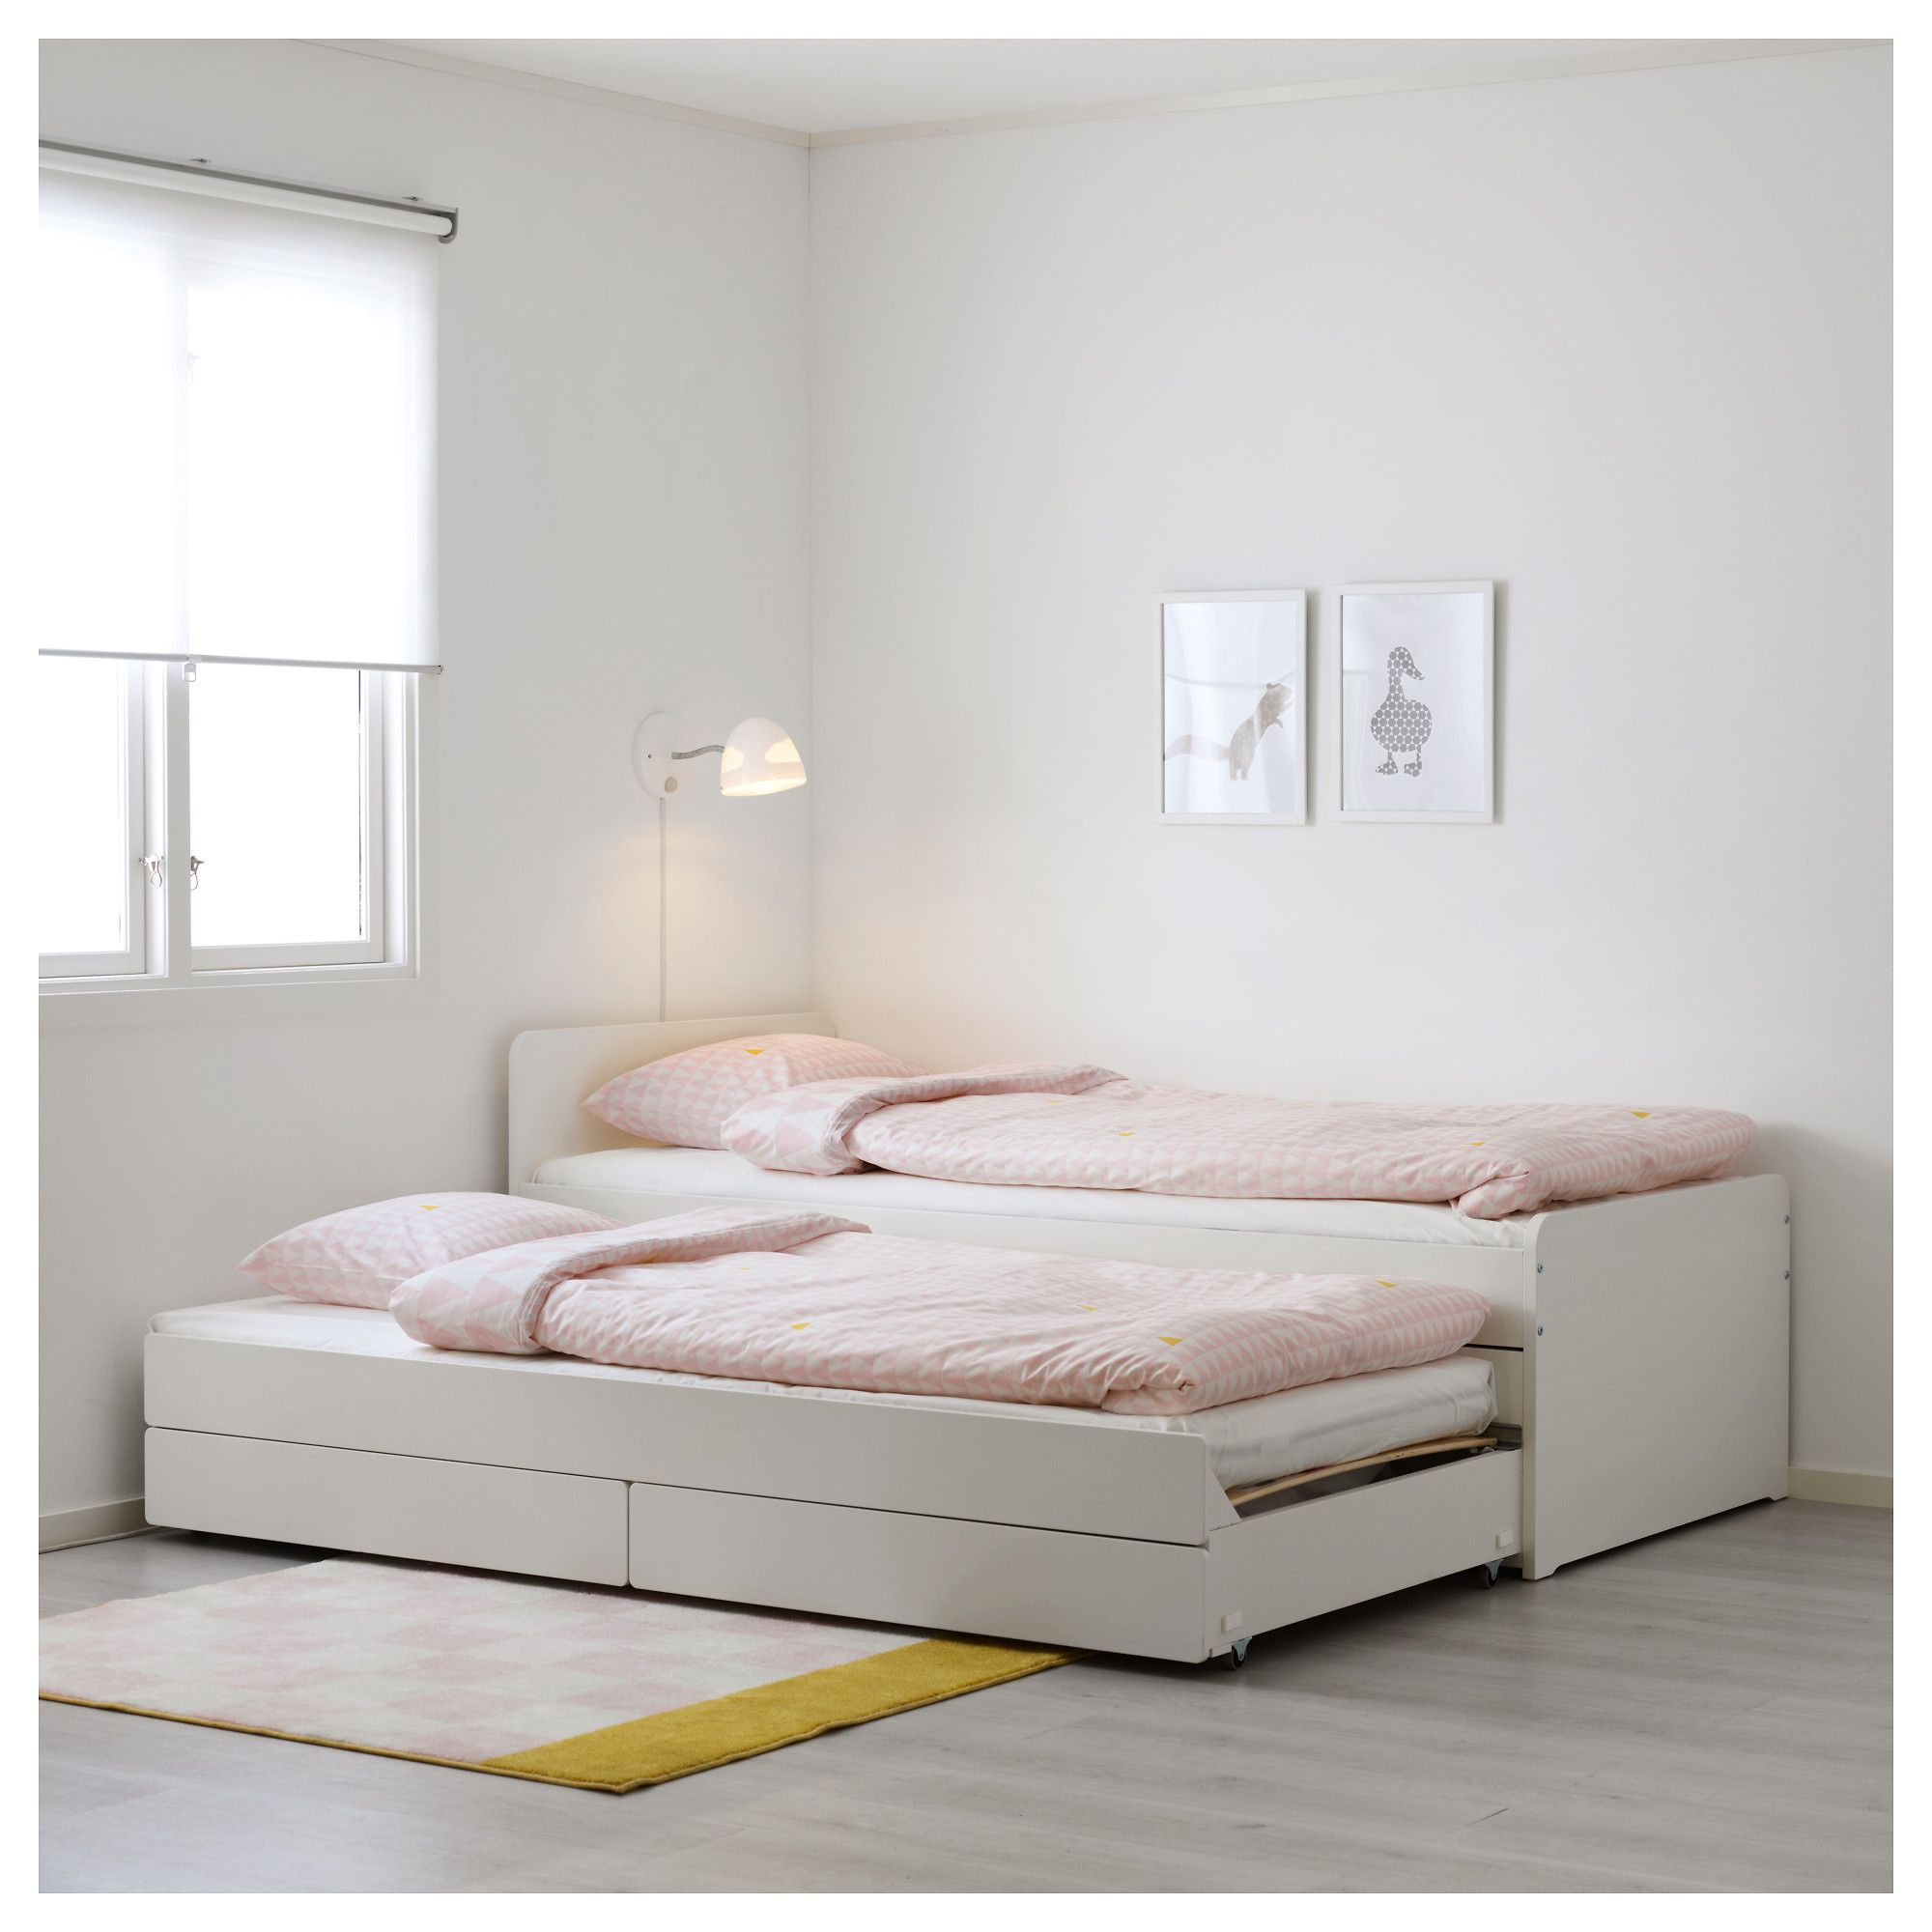 sla kt bed frame w pull out bed storage white bed storage bed